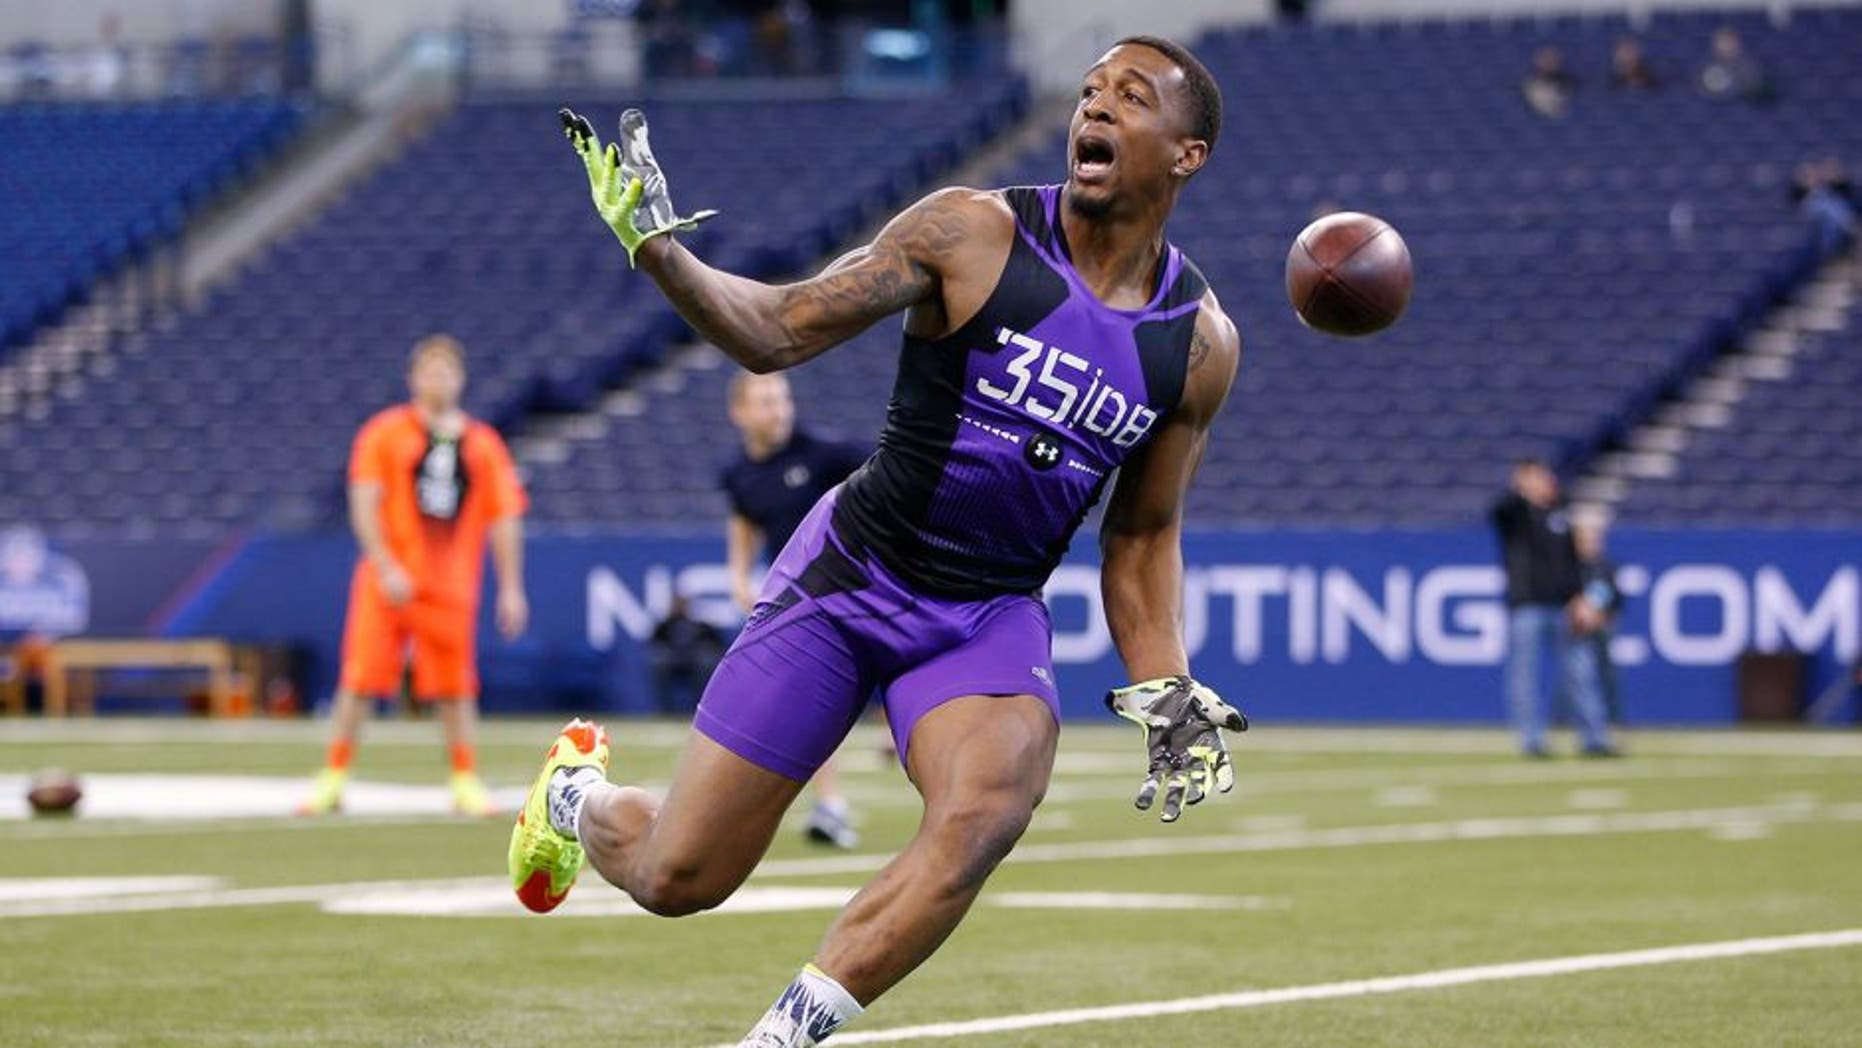 INDIANAPOLIS, IN - FEBRUARY 23: Defensive back Garry Peters of Clemson in action during the 2015 NFL Scouting Combine at Lucas Oil Stadium on February 23, 2015 in Indianapolis, Indiana. (Photo by Joe Robbins/Getty Images)